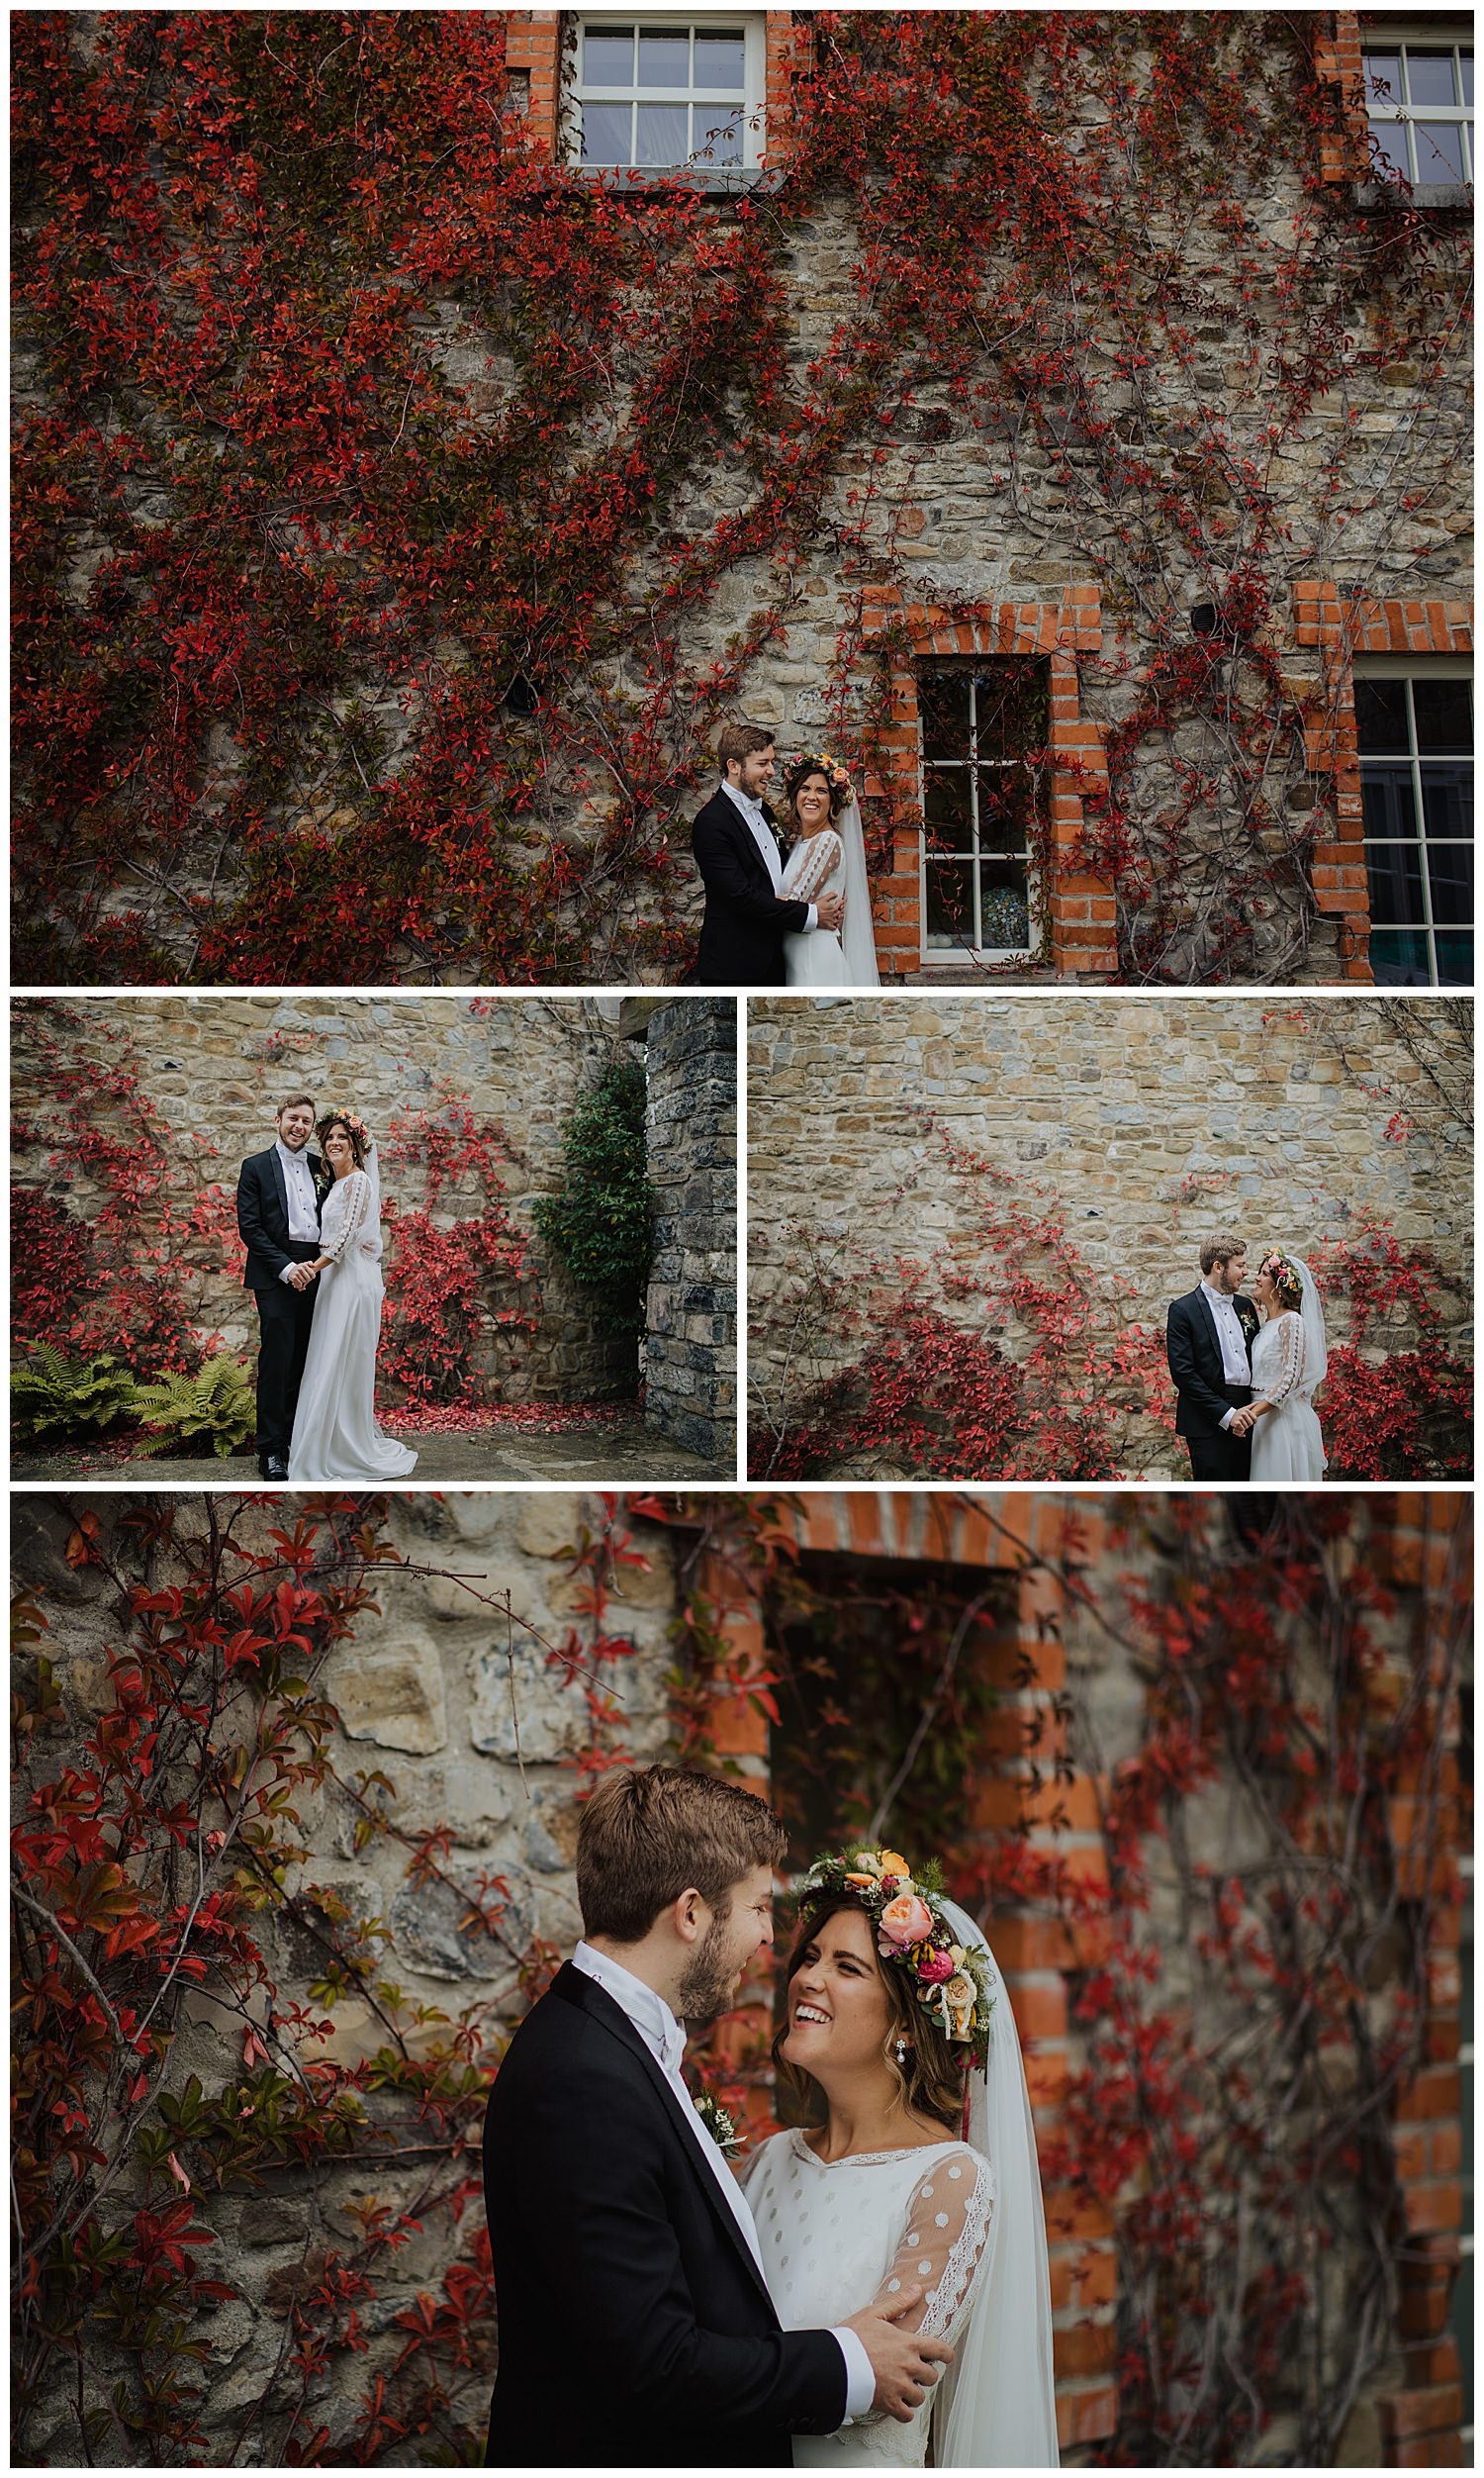 a+s_ballymagarvey_village_wedding_photographer_livia_figueiredo_35.jpg